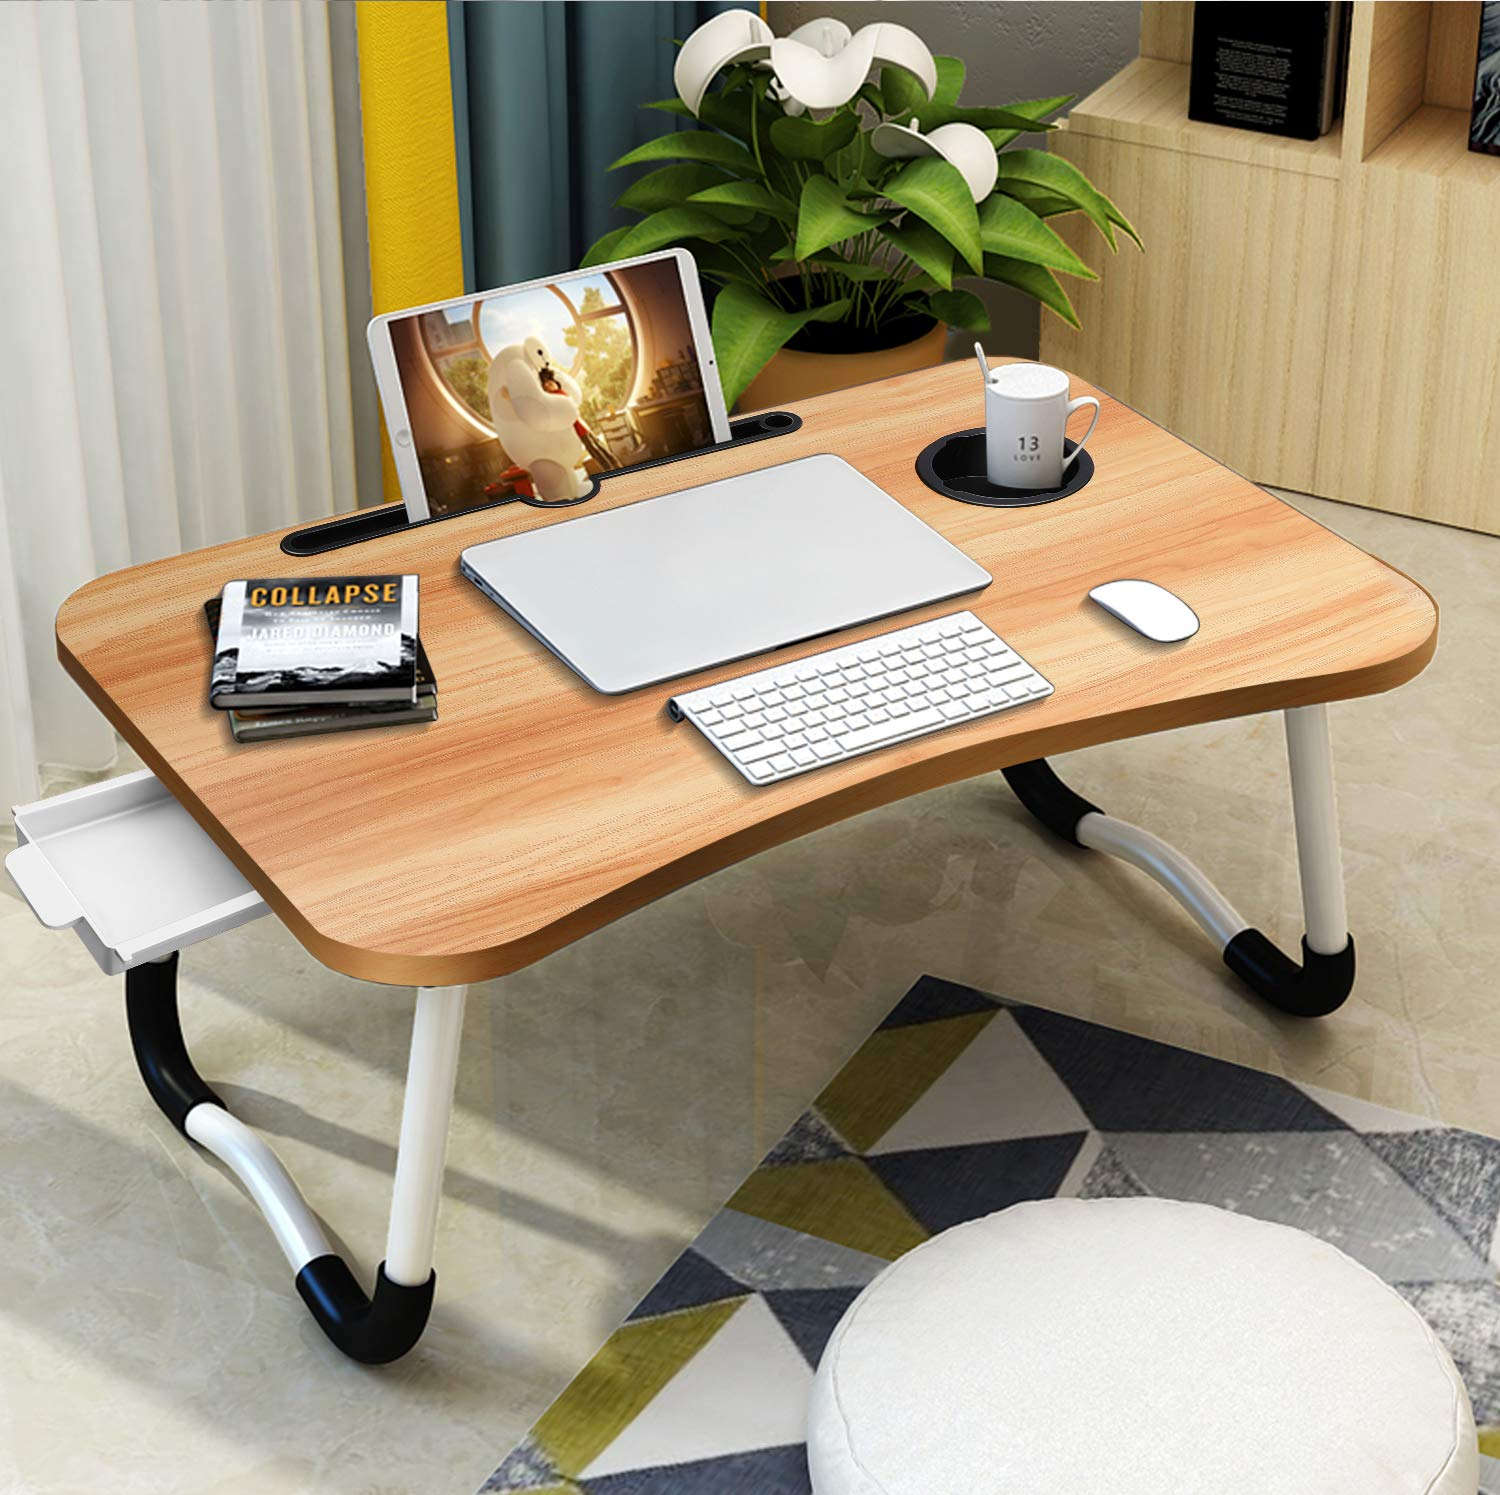 Laptop Desk for Bed,Villsure Portable Laptop Bed Tray Table Notebook Stand Reading Holder with Foldable Legs,Storage Drawer,Cup Holder for Eating, Writing,Reading, Watching Movie on Bed/Couch/Sofa